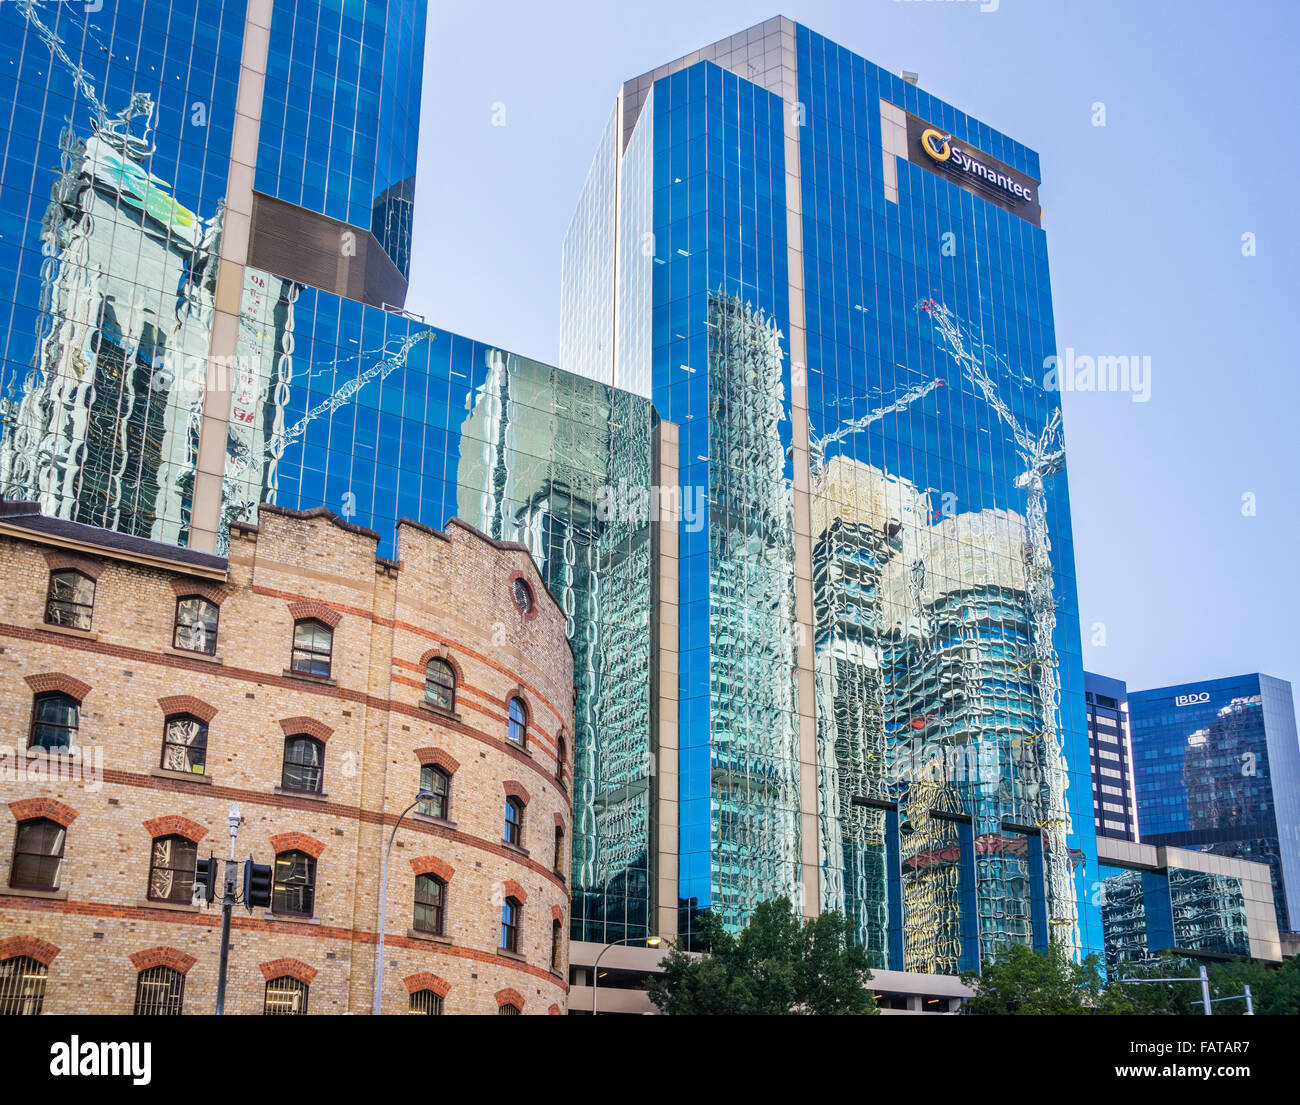 Australia, New South Wales, Sydney, the heritage facade of the Grafton Bond Building against the Maritime Trade - Stock Image